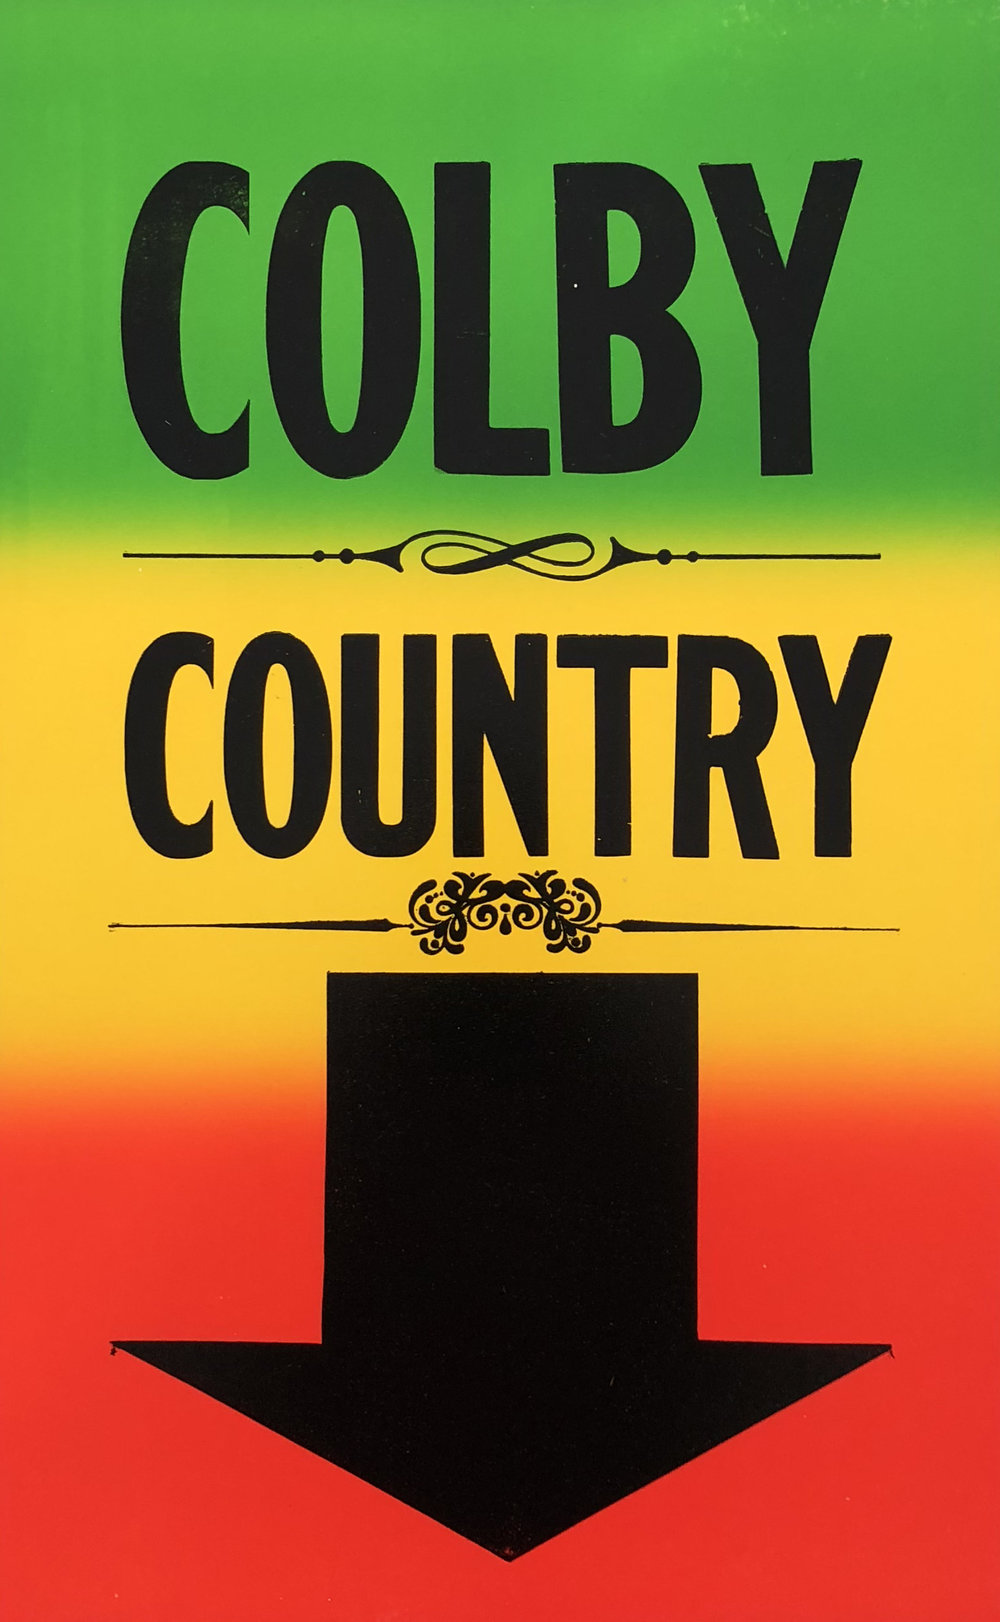 Image: WENDY MURRAY: Colby Country, letterpress on Colby Poster Printing Co. archive poster, 55x35cm, 2018